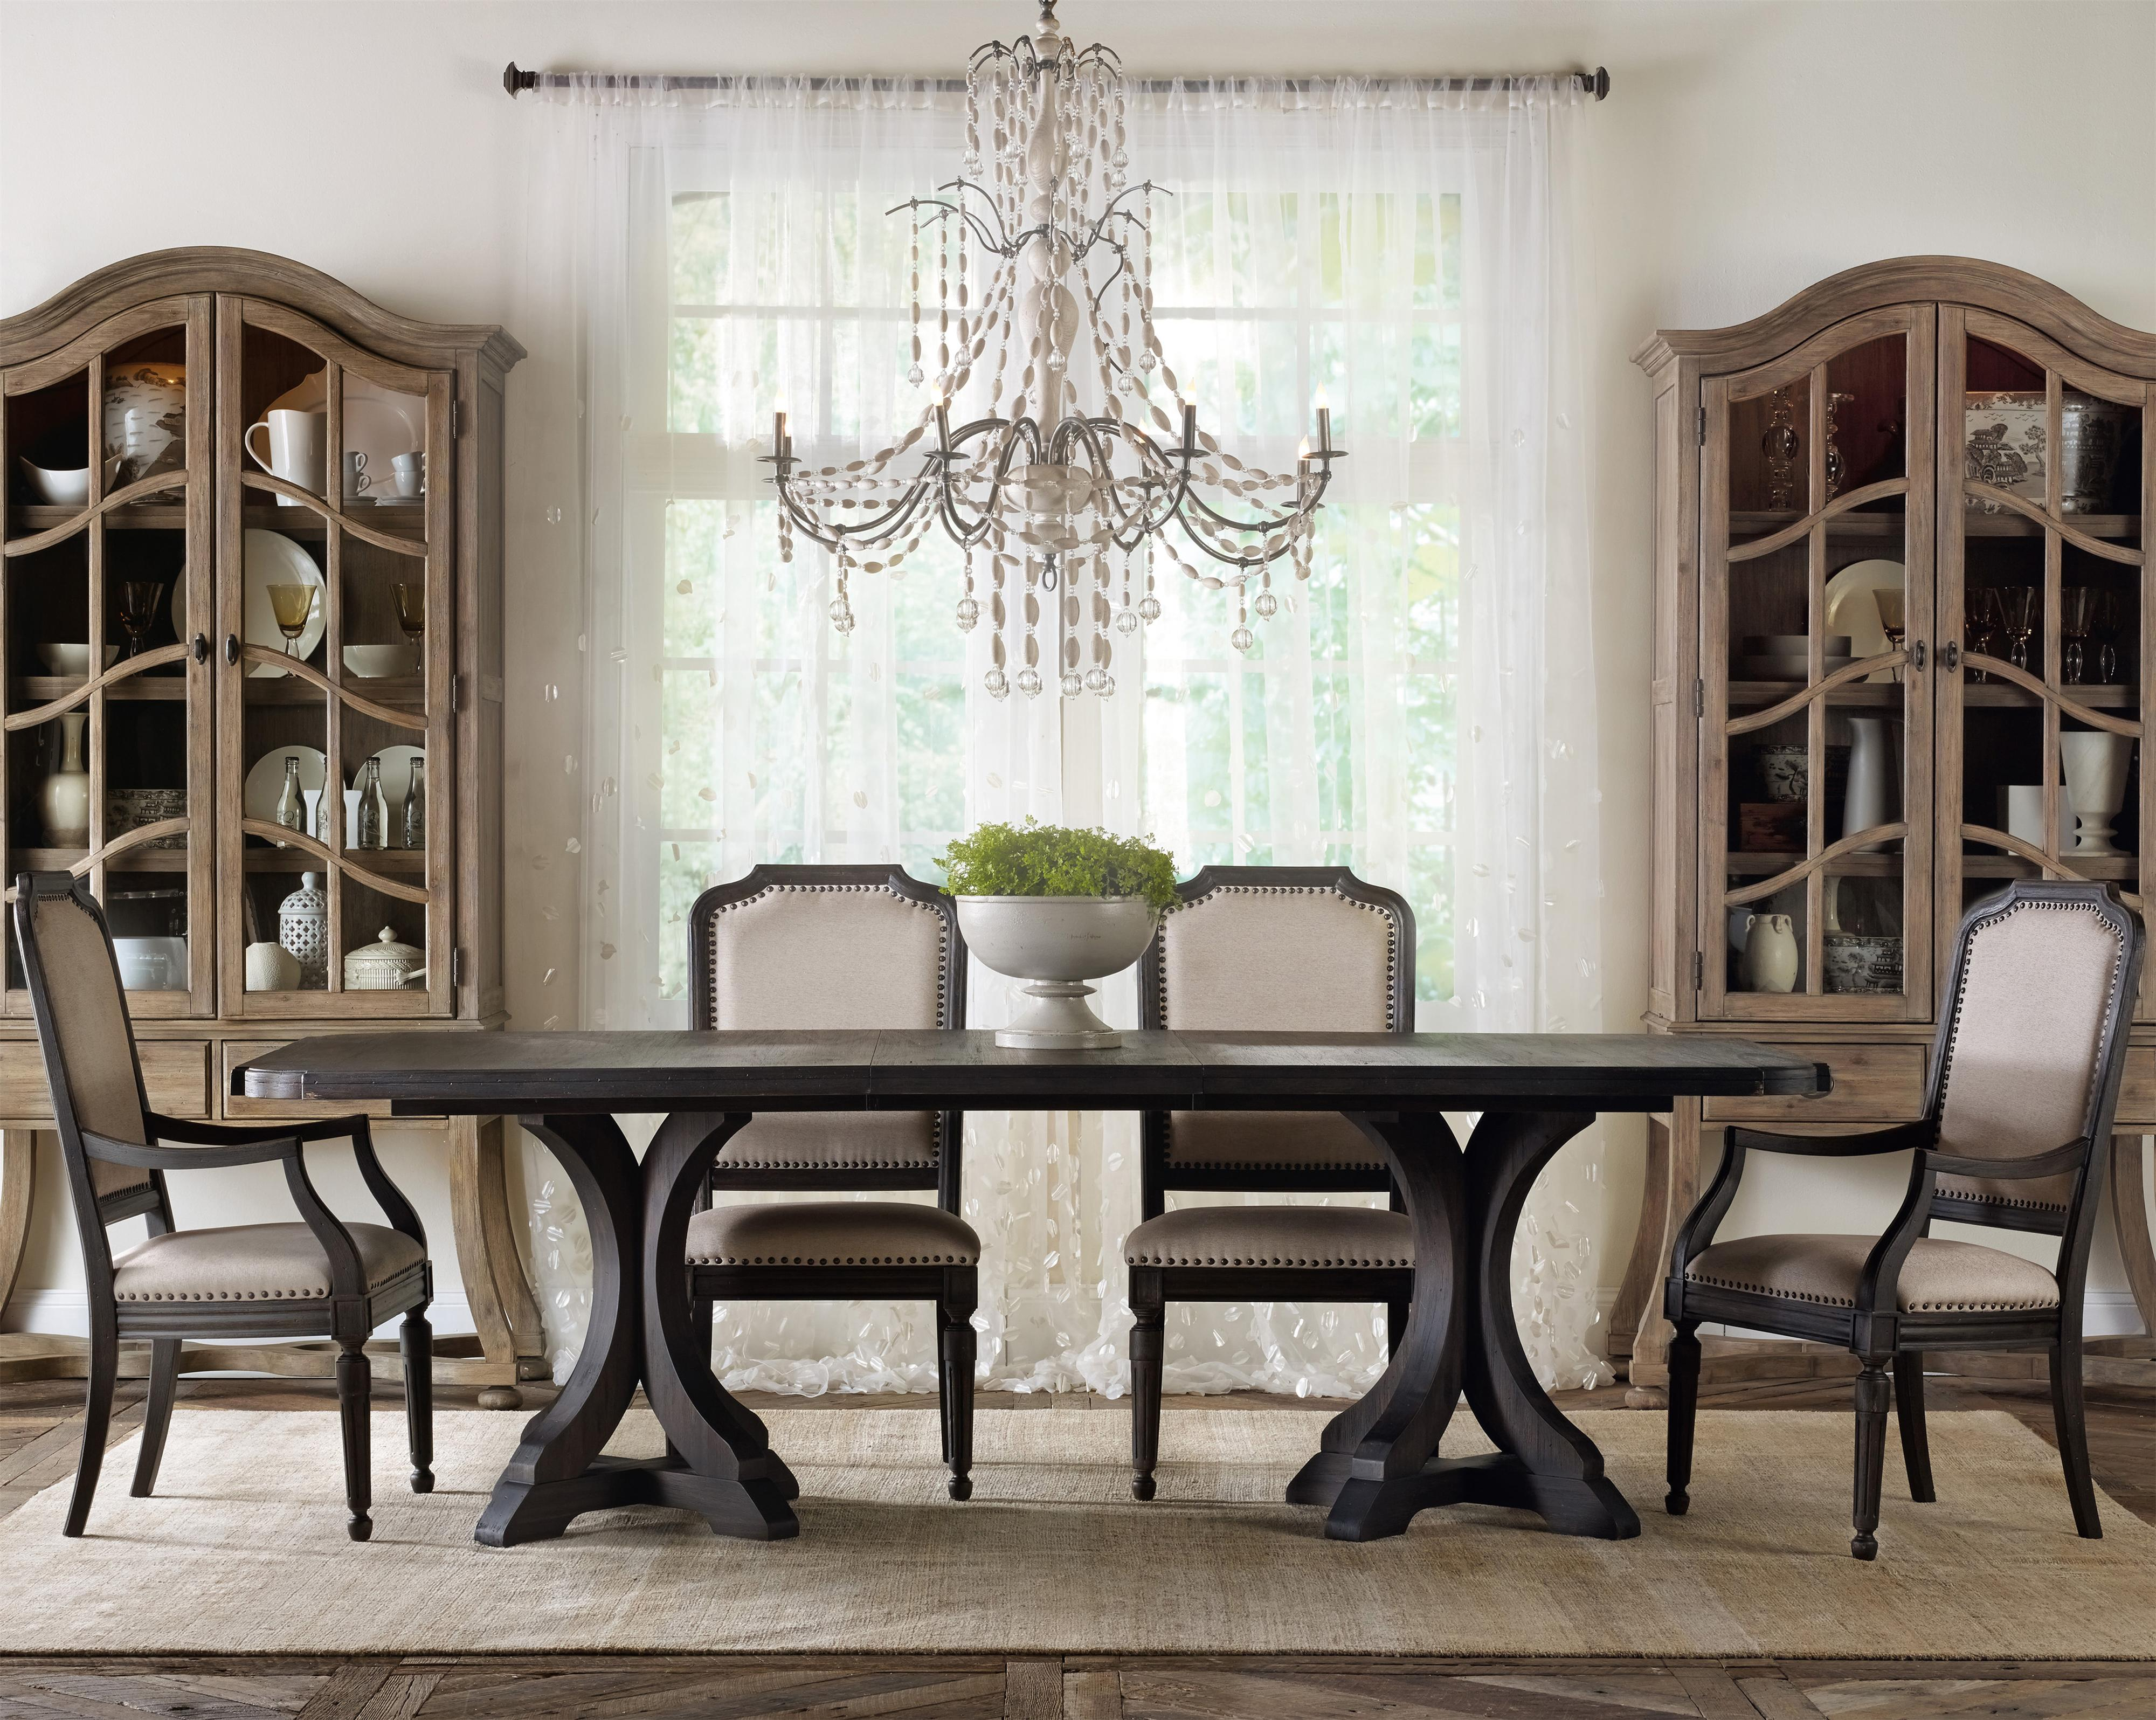 upholstered chairs for dining room stool chair garden hooker furniture corsica rectangle pedestal table set with